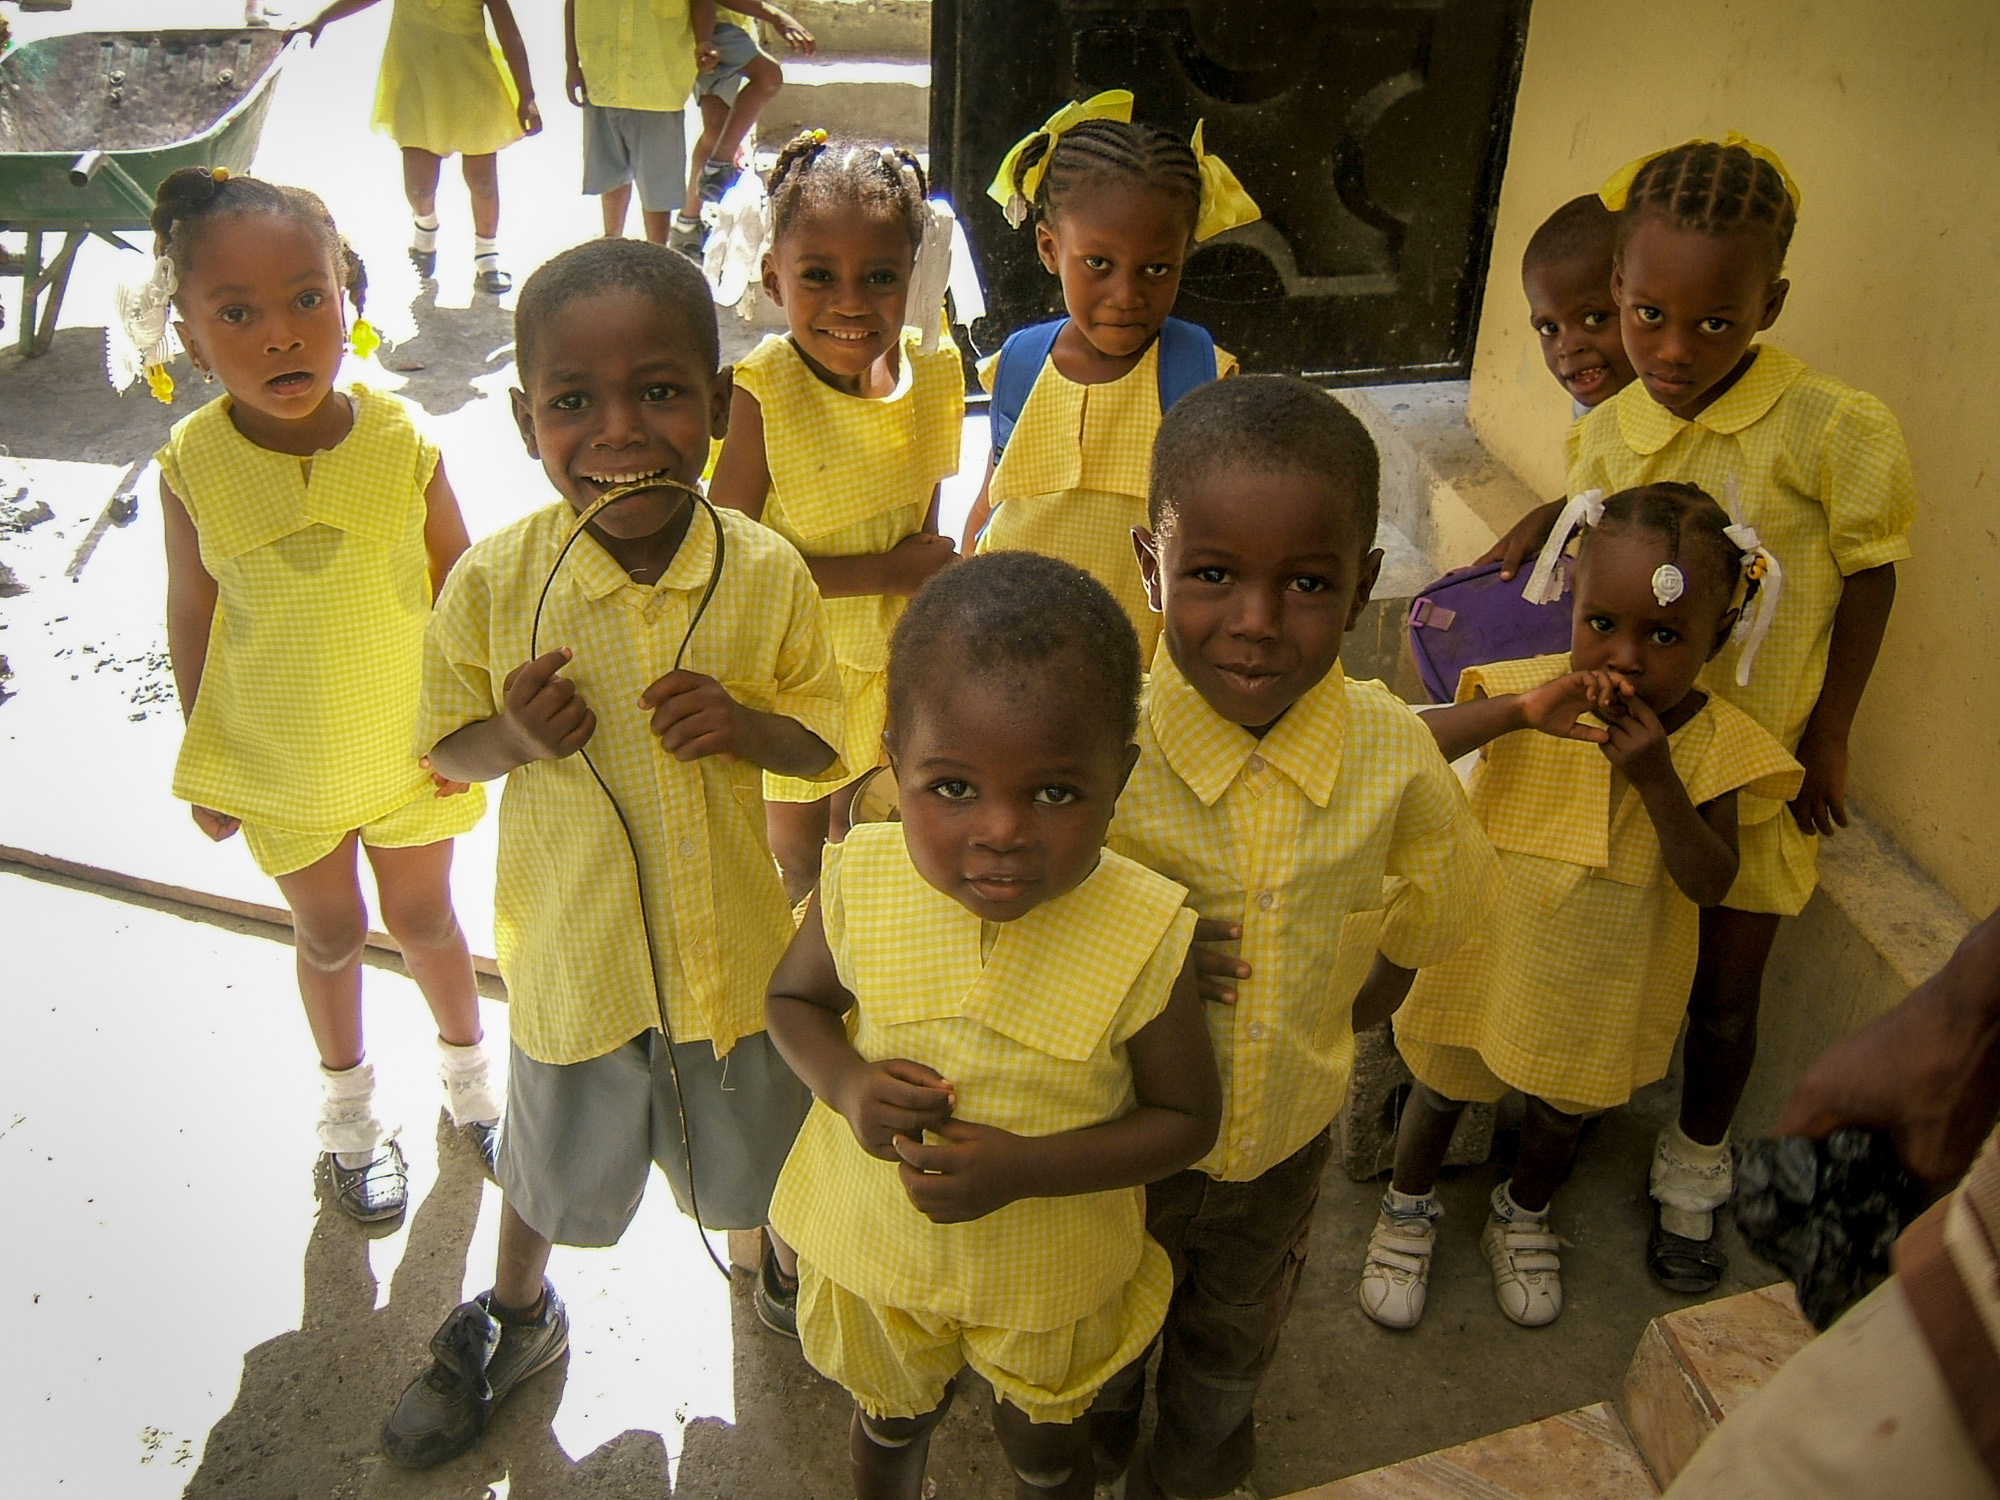 Children at Thomás School